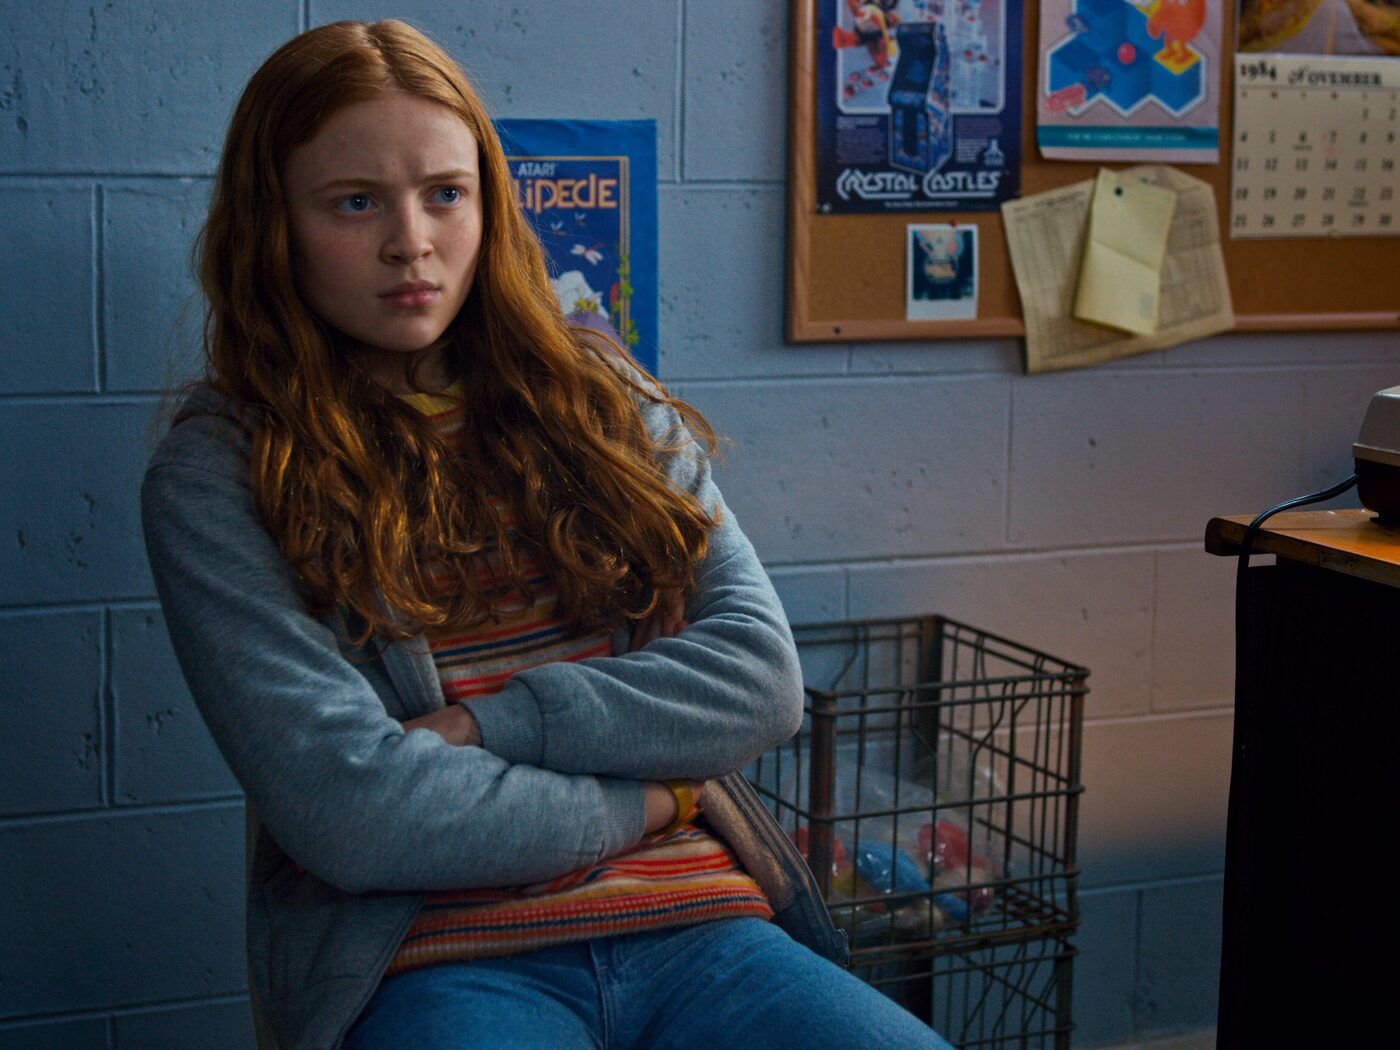 sadie-sink-as-max-stranger-things-season-2-ns.jpg